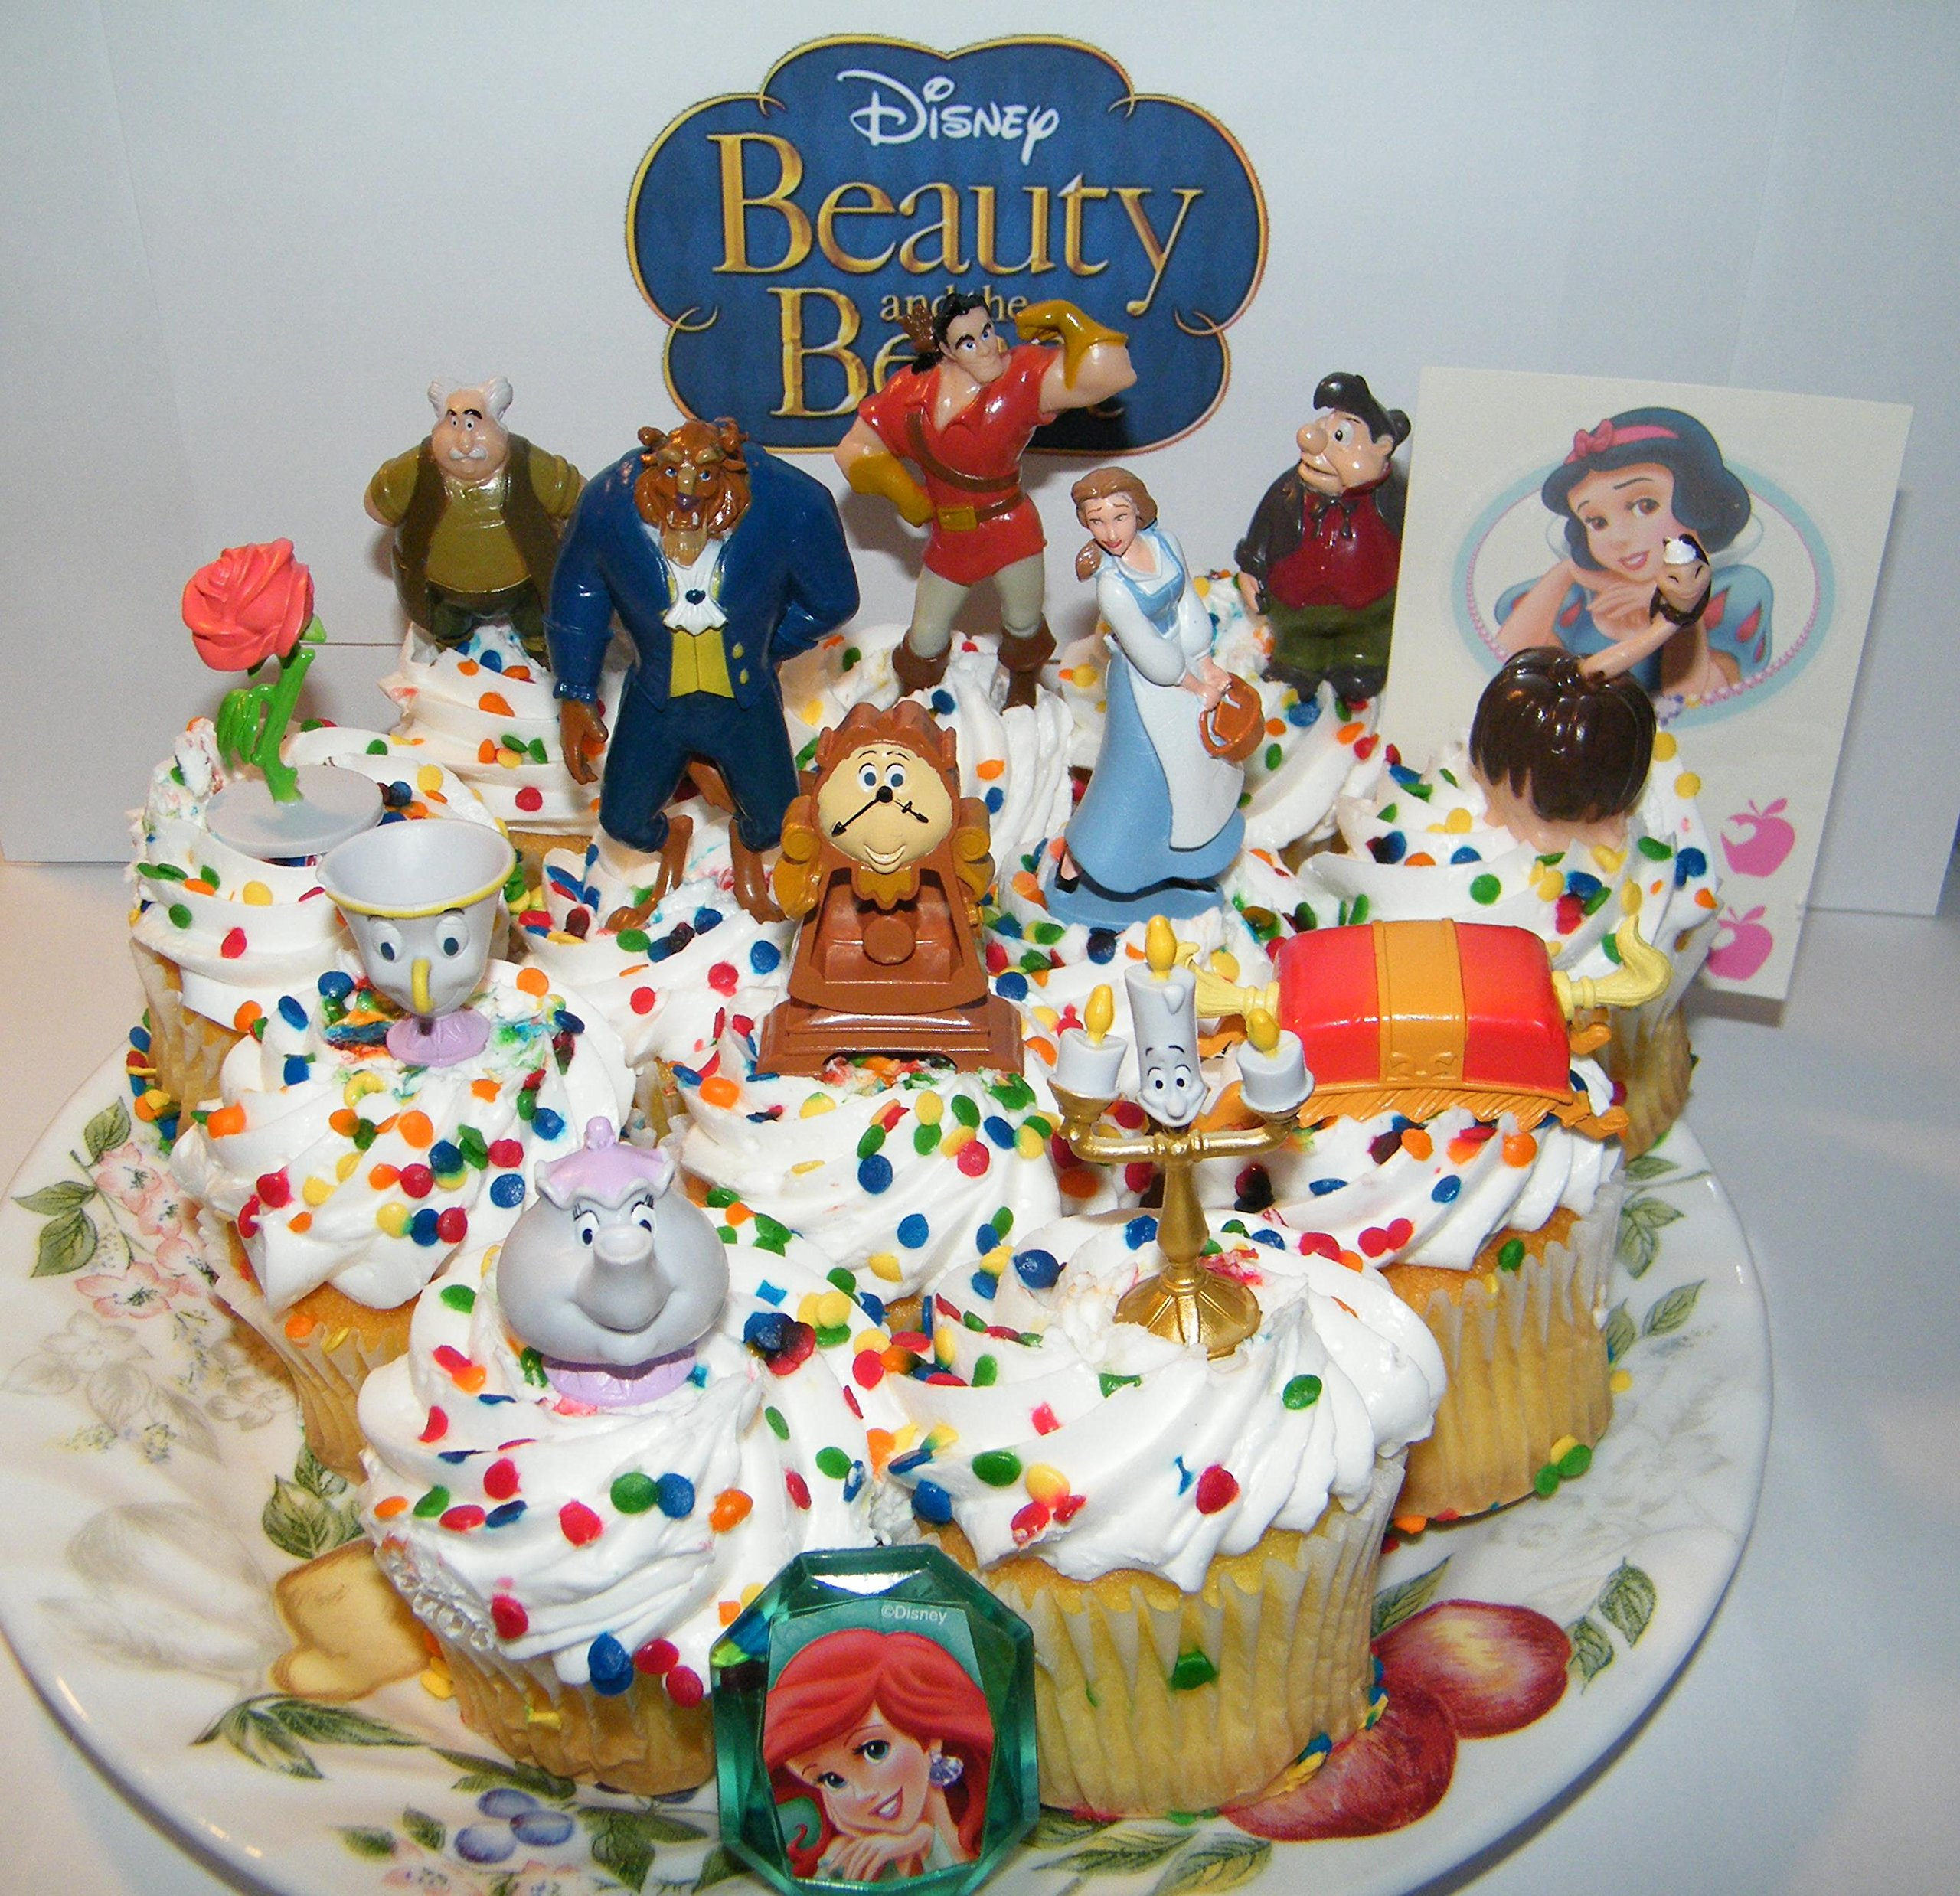 Beauty and the Beast Deluxe Mini Cake Toppers Cupcake Decorations Set of 14 with Figures, a Sticker Sheet and ToyRing Featuring Belle, The Prince Beast, Chip and More!